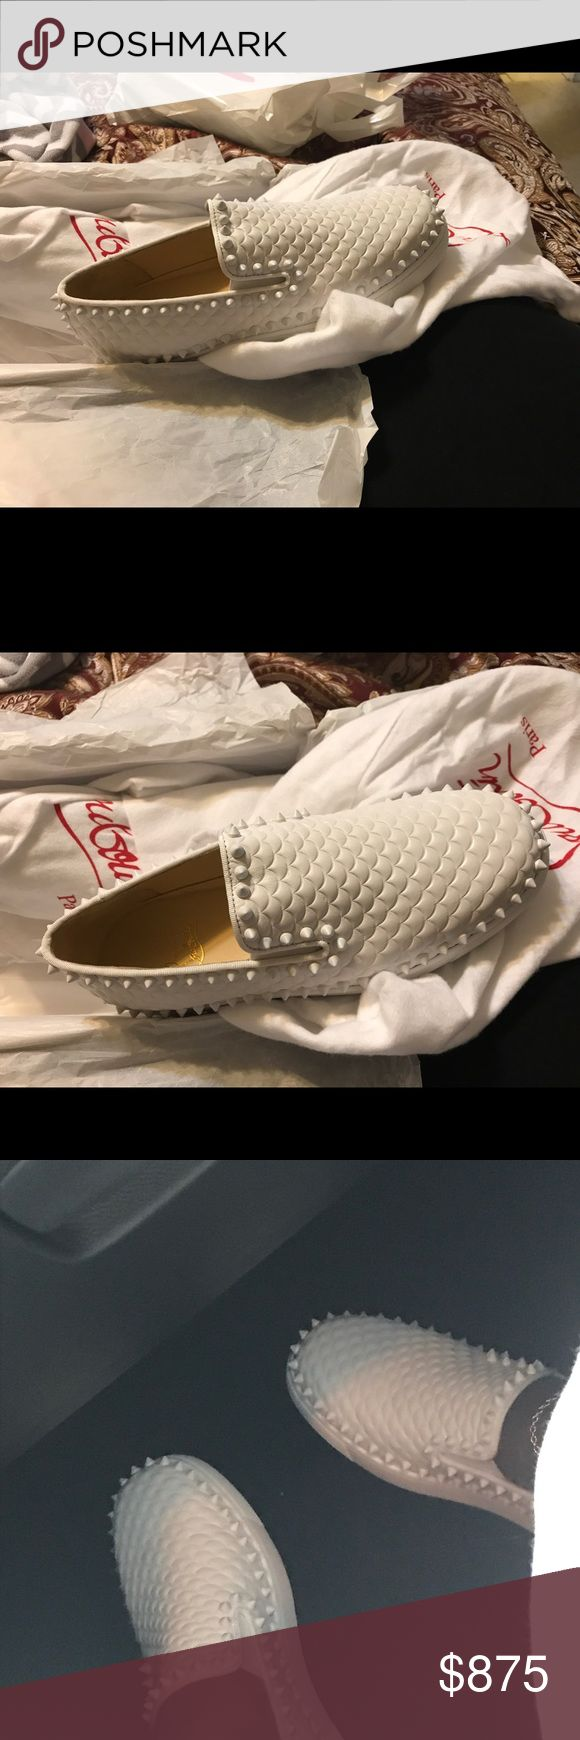 Christian Louboutin spike roller boat slip on Perfect condition worn once. All white shoes with signature red soles😍😍 these are an eye catcher. Please no low ballers. Due to posh taking such of the profit I can't lower the price much. Thanks for understanding. This shoe is practically brand new Christian Louboutin Shoes Flats & Loafers